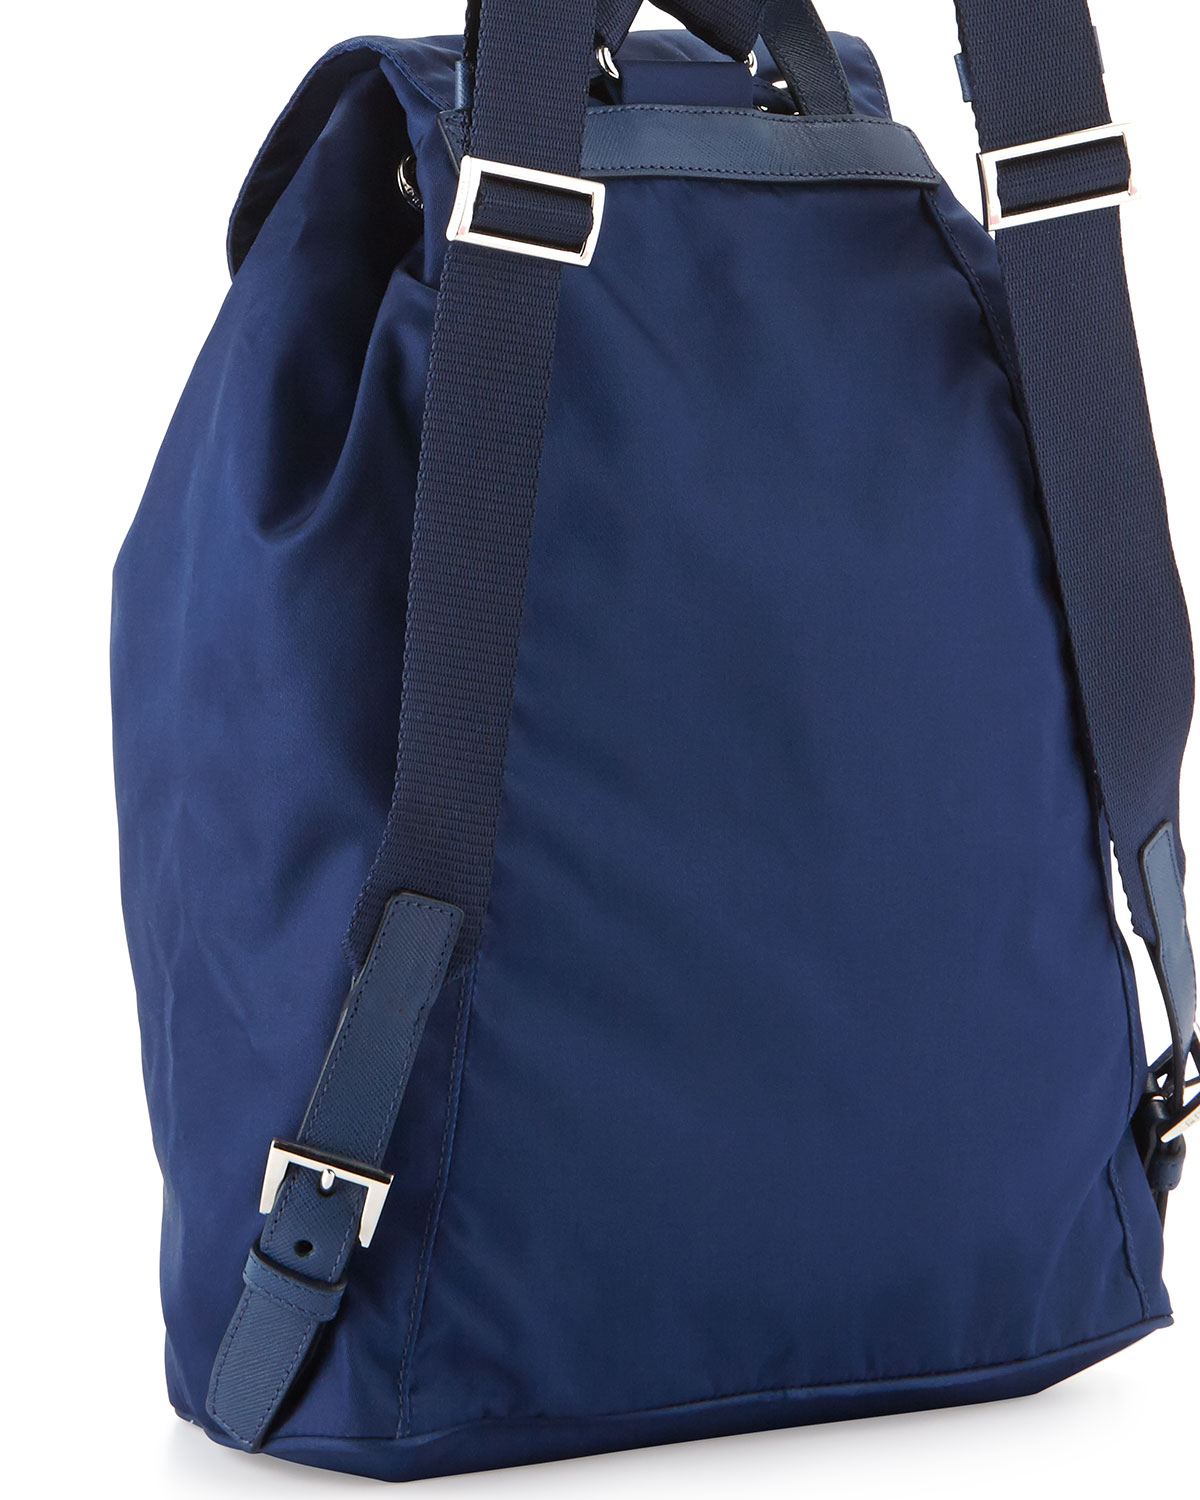 401983ef431058 Prada Vela Medium Backpack in Blue - Lyst